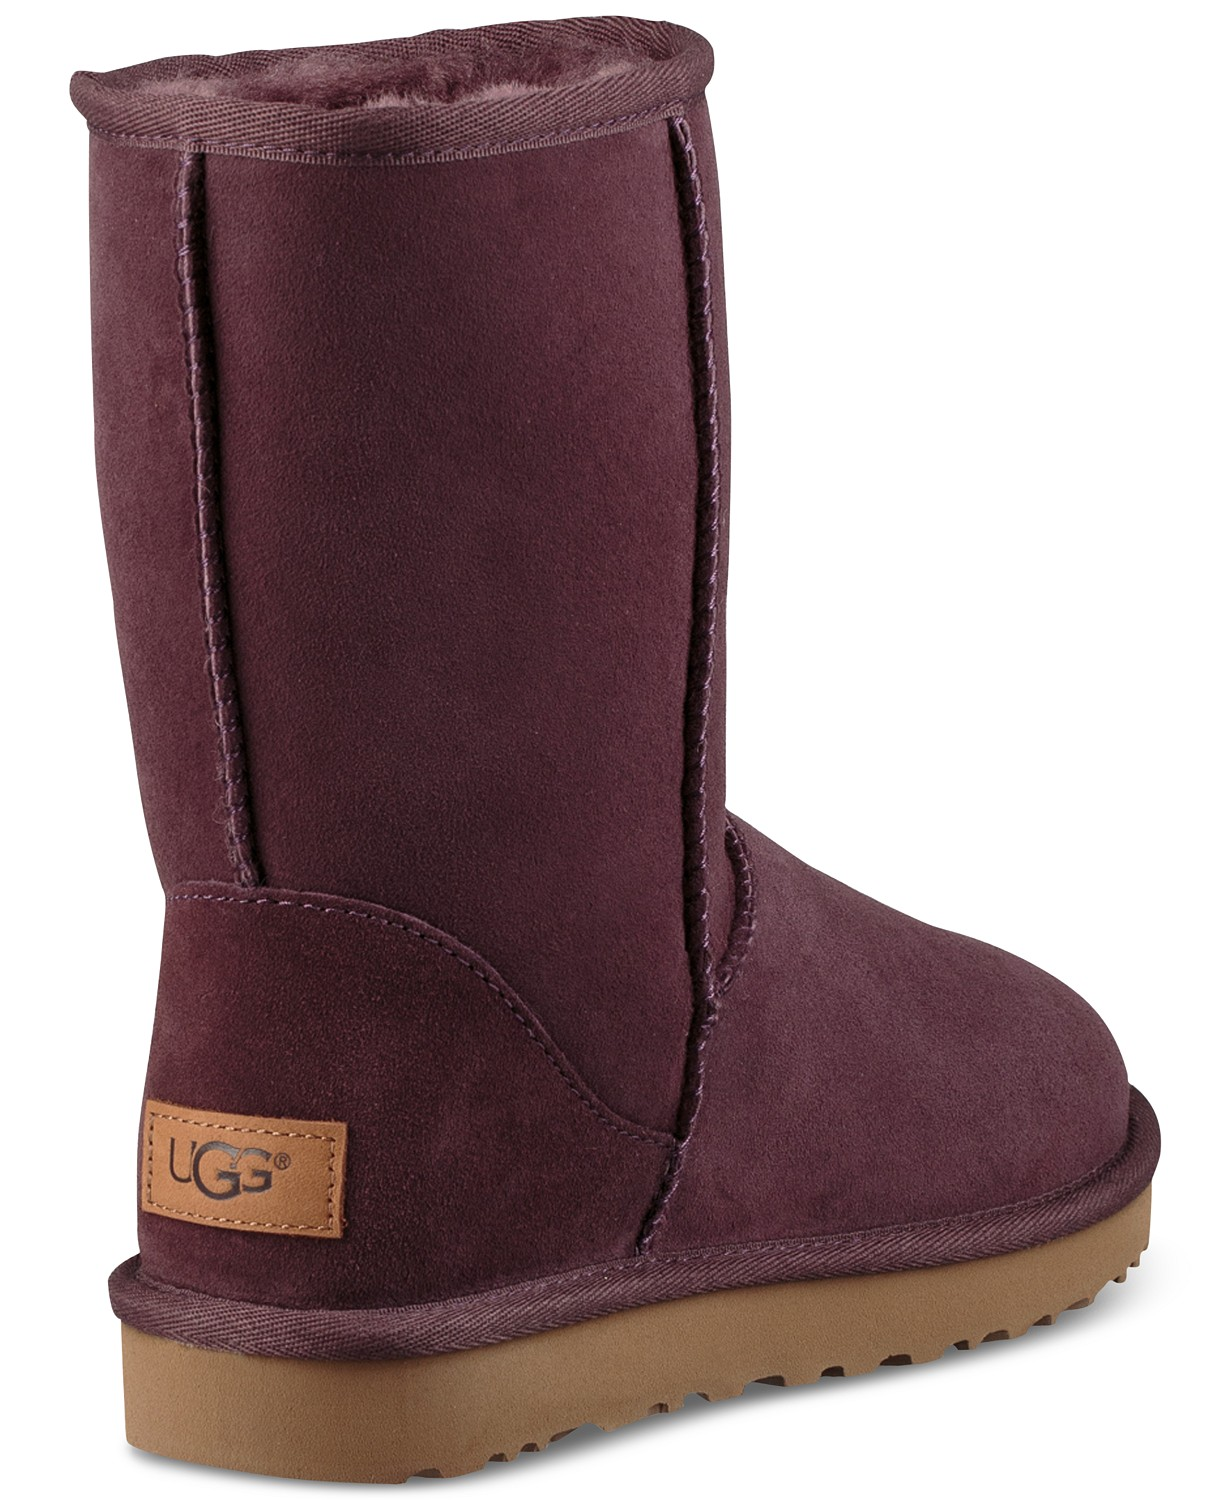 51aa2613d06 Macy's: UGG Boots on 60% off Last act clearance! Hurry! – Dealing in ...